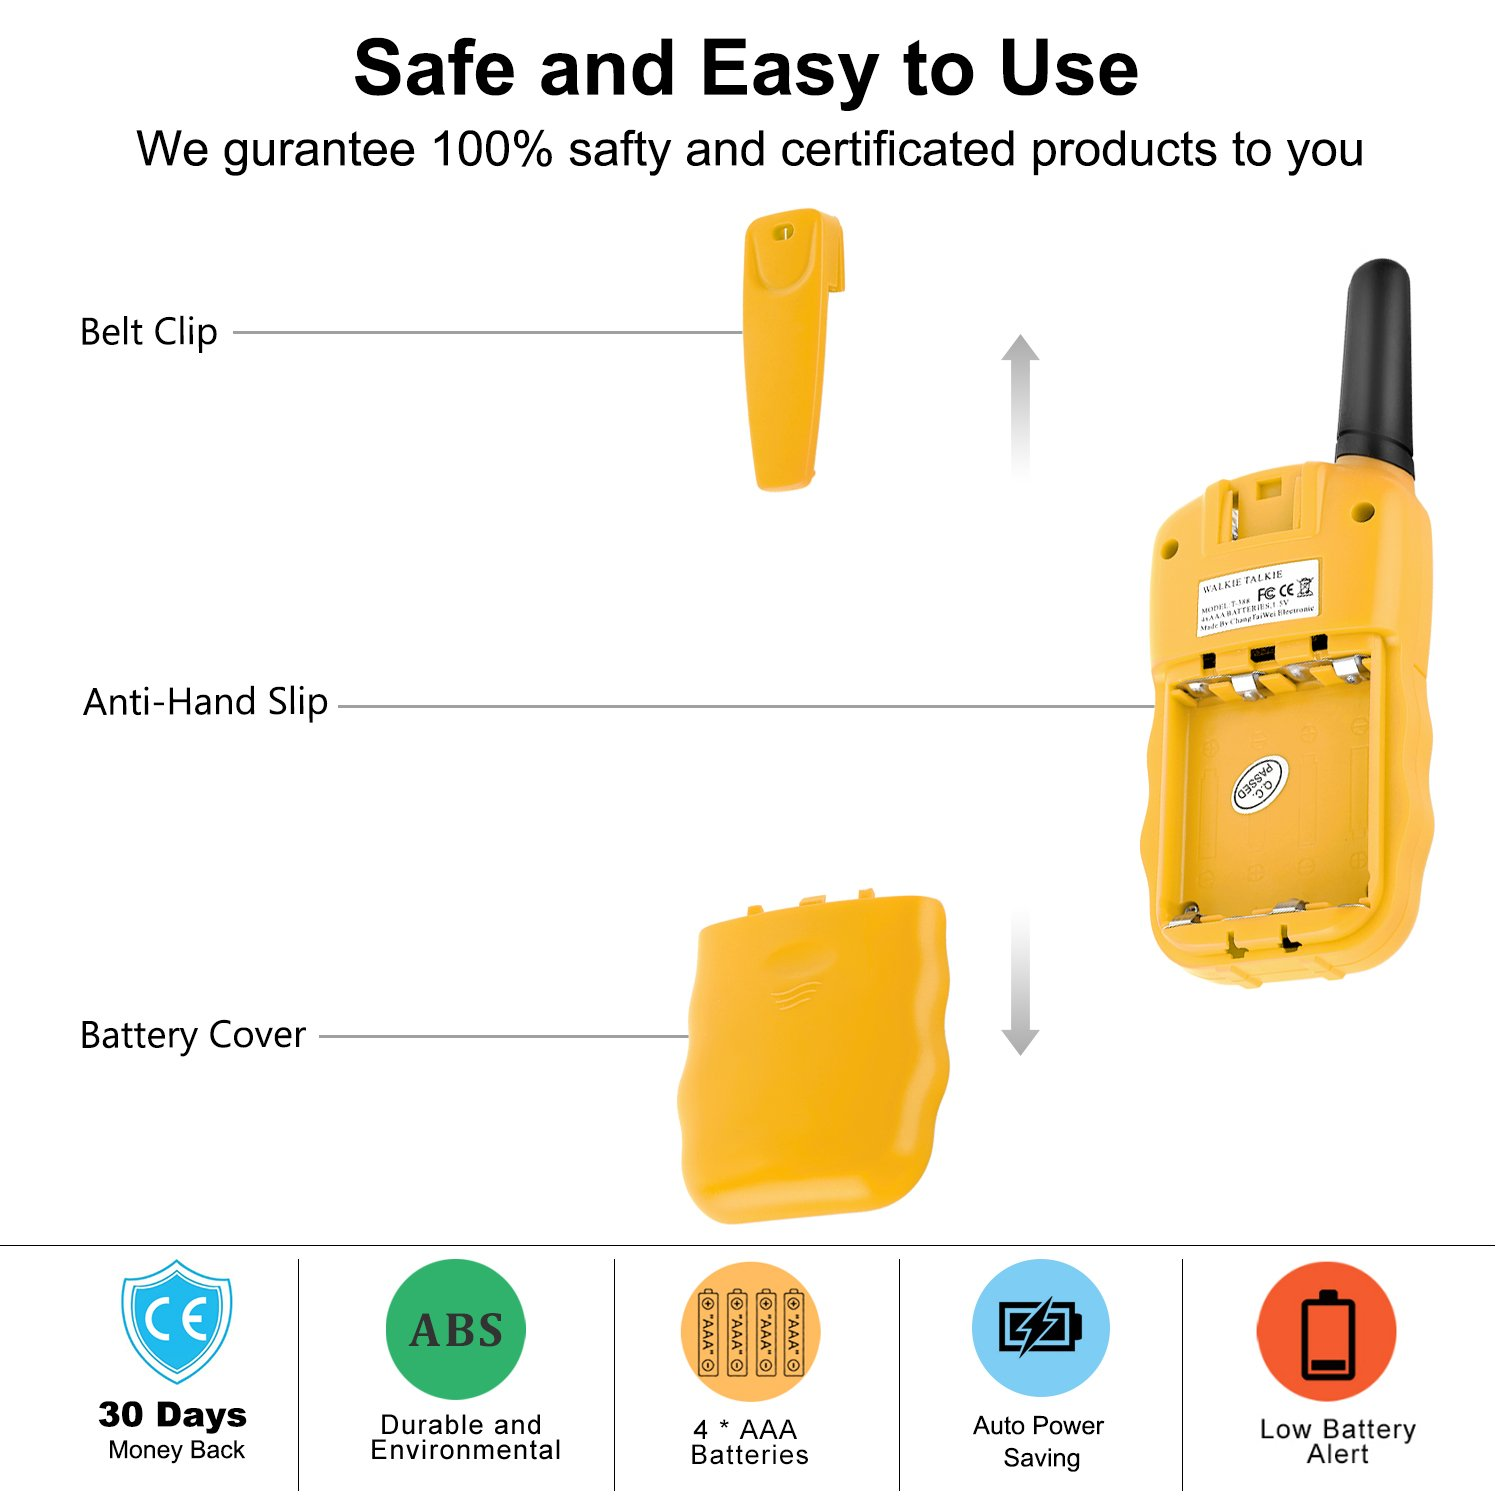 WisHouse Walkie Talkies for Kids, Toys for Boys and Girls Best Handheld Walky Talky with Flashlight,VOX Function,Share Your Happiness with Family and Friends Halloween(T388 Yellow 4 Pack) by Wishouse (Image #7)